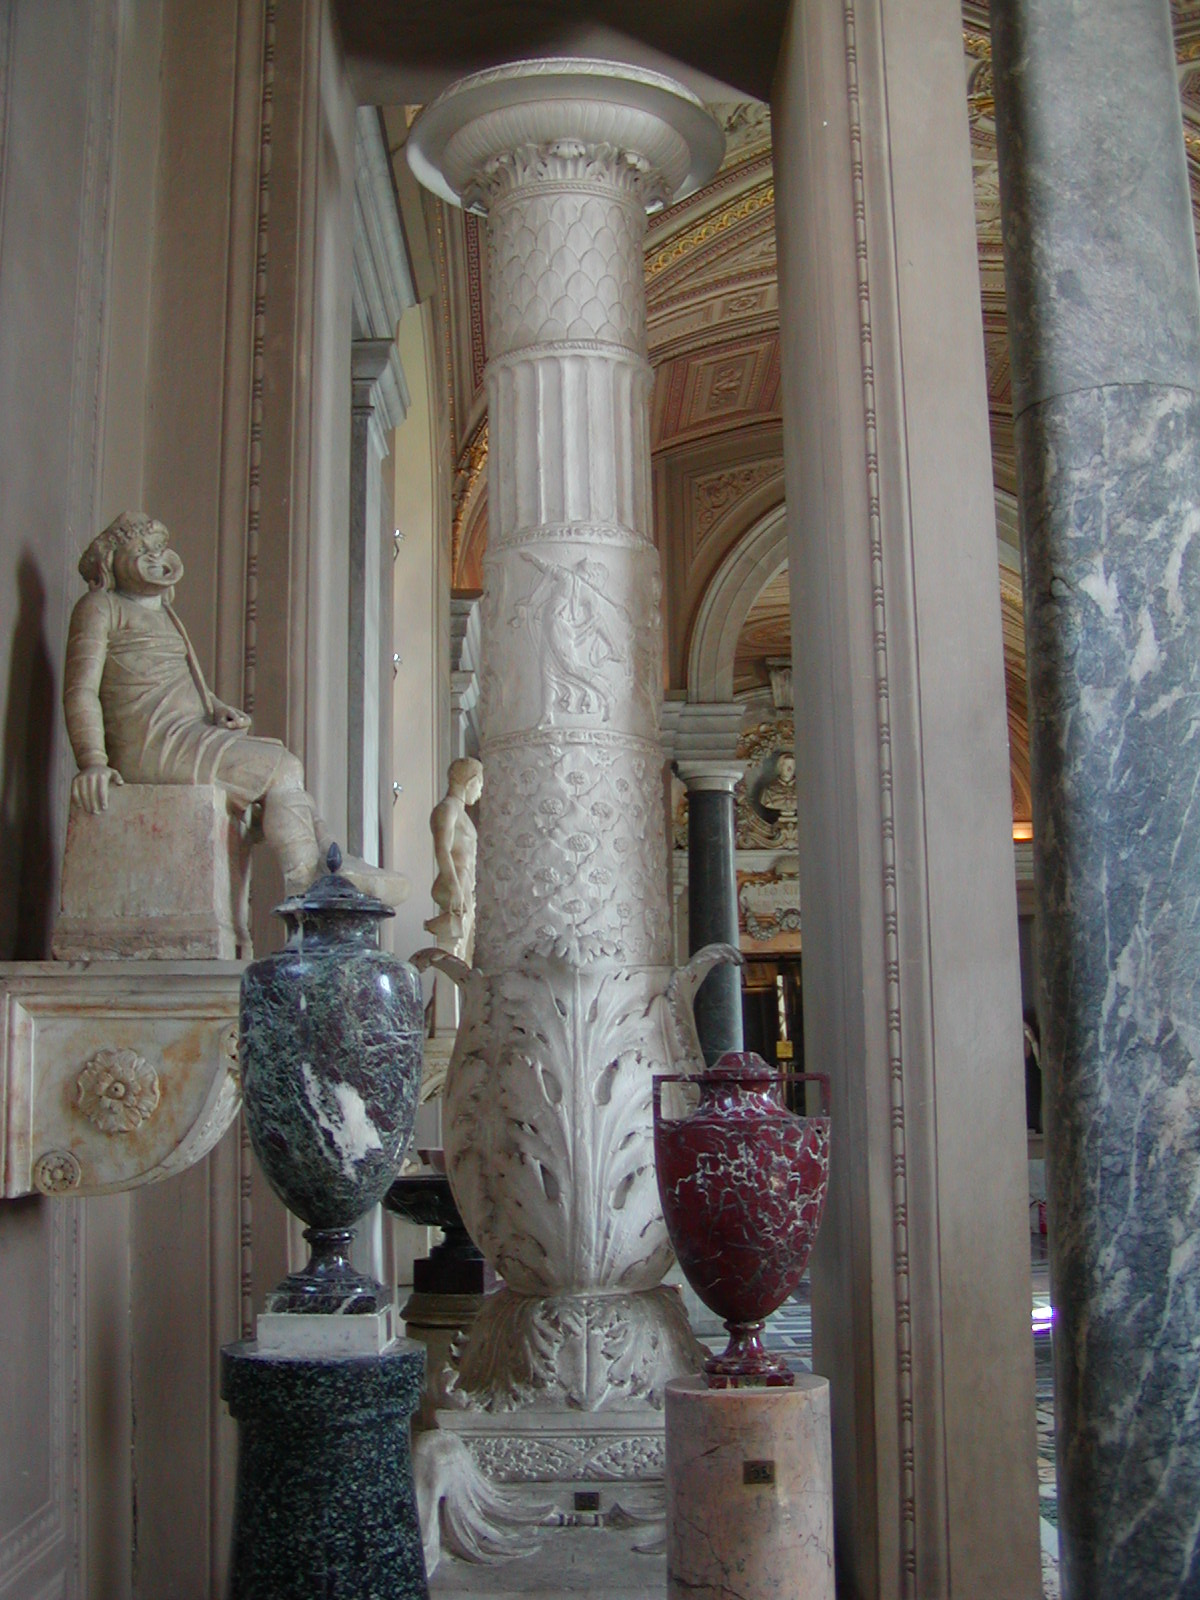 Gallery of the Candelabra - 2002-09-10-150511